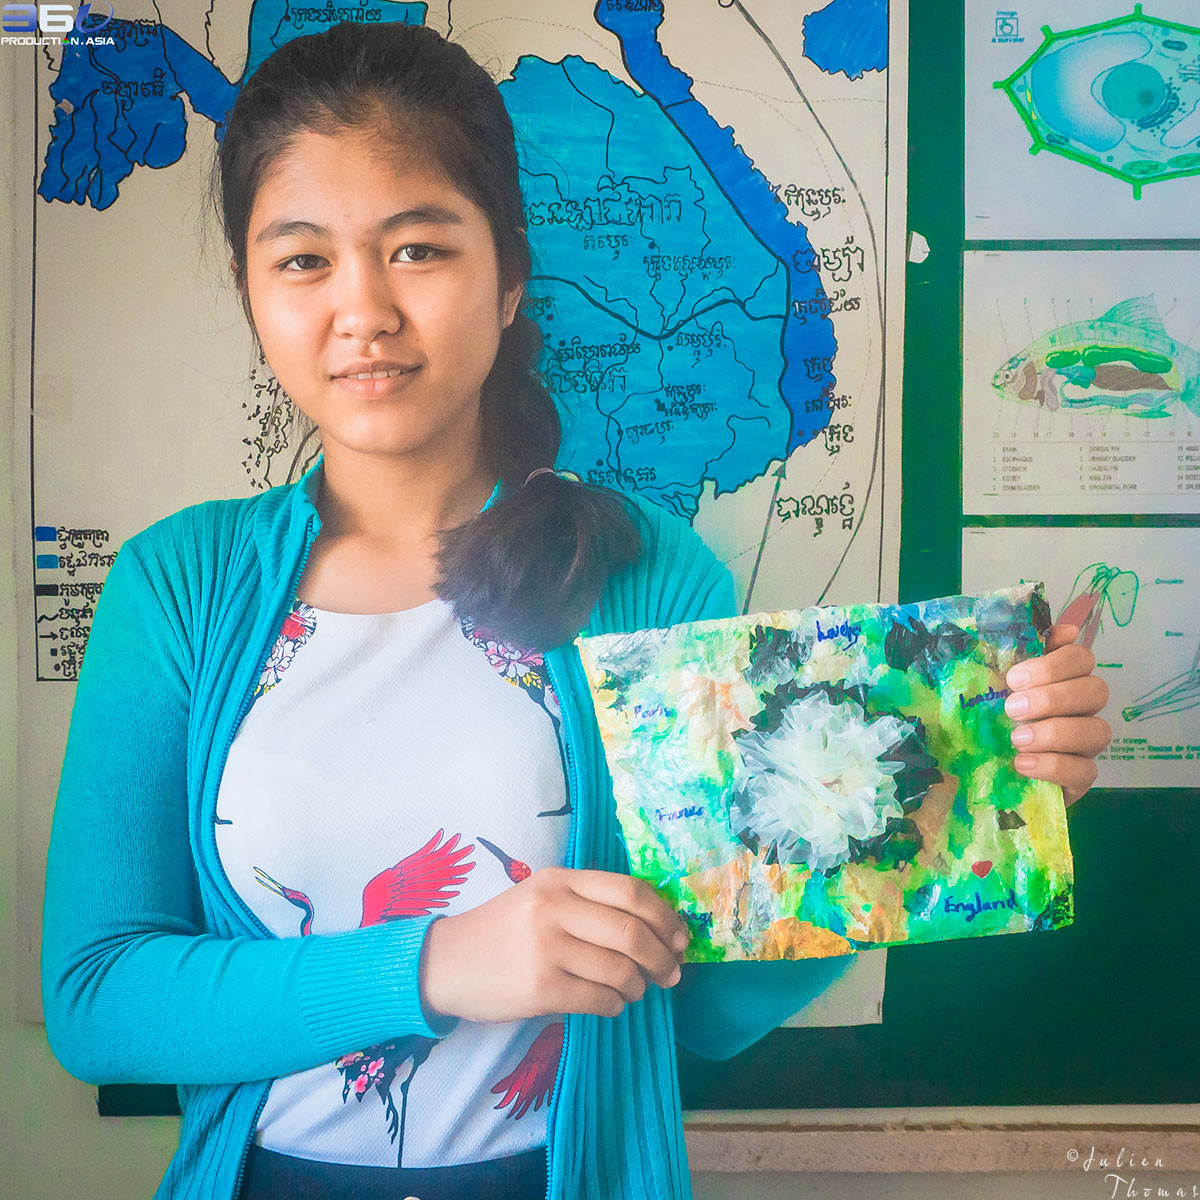 Schoolgirl with her homemade plastic purse made from upcycled waste material during a recycle and ecological course for children in Phnom Penh, Cambodia.